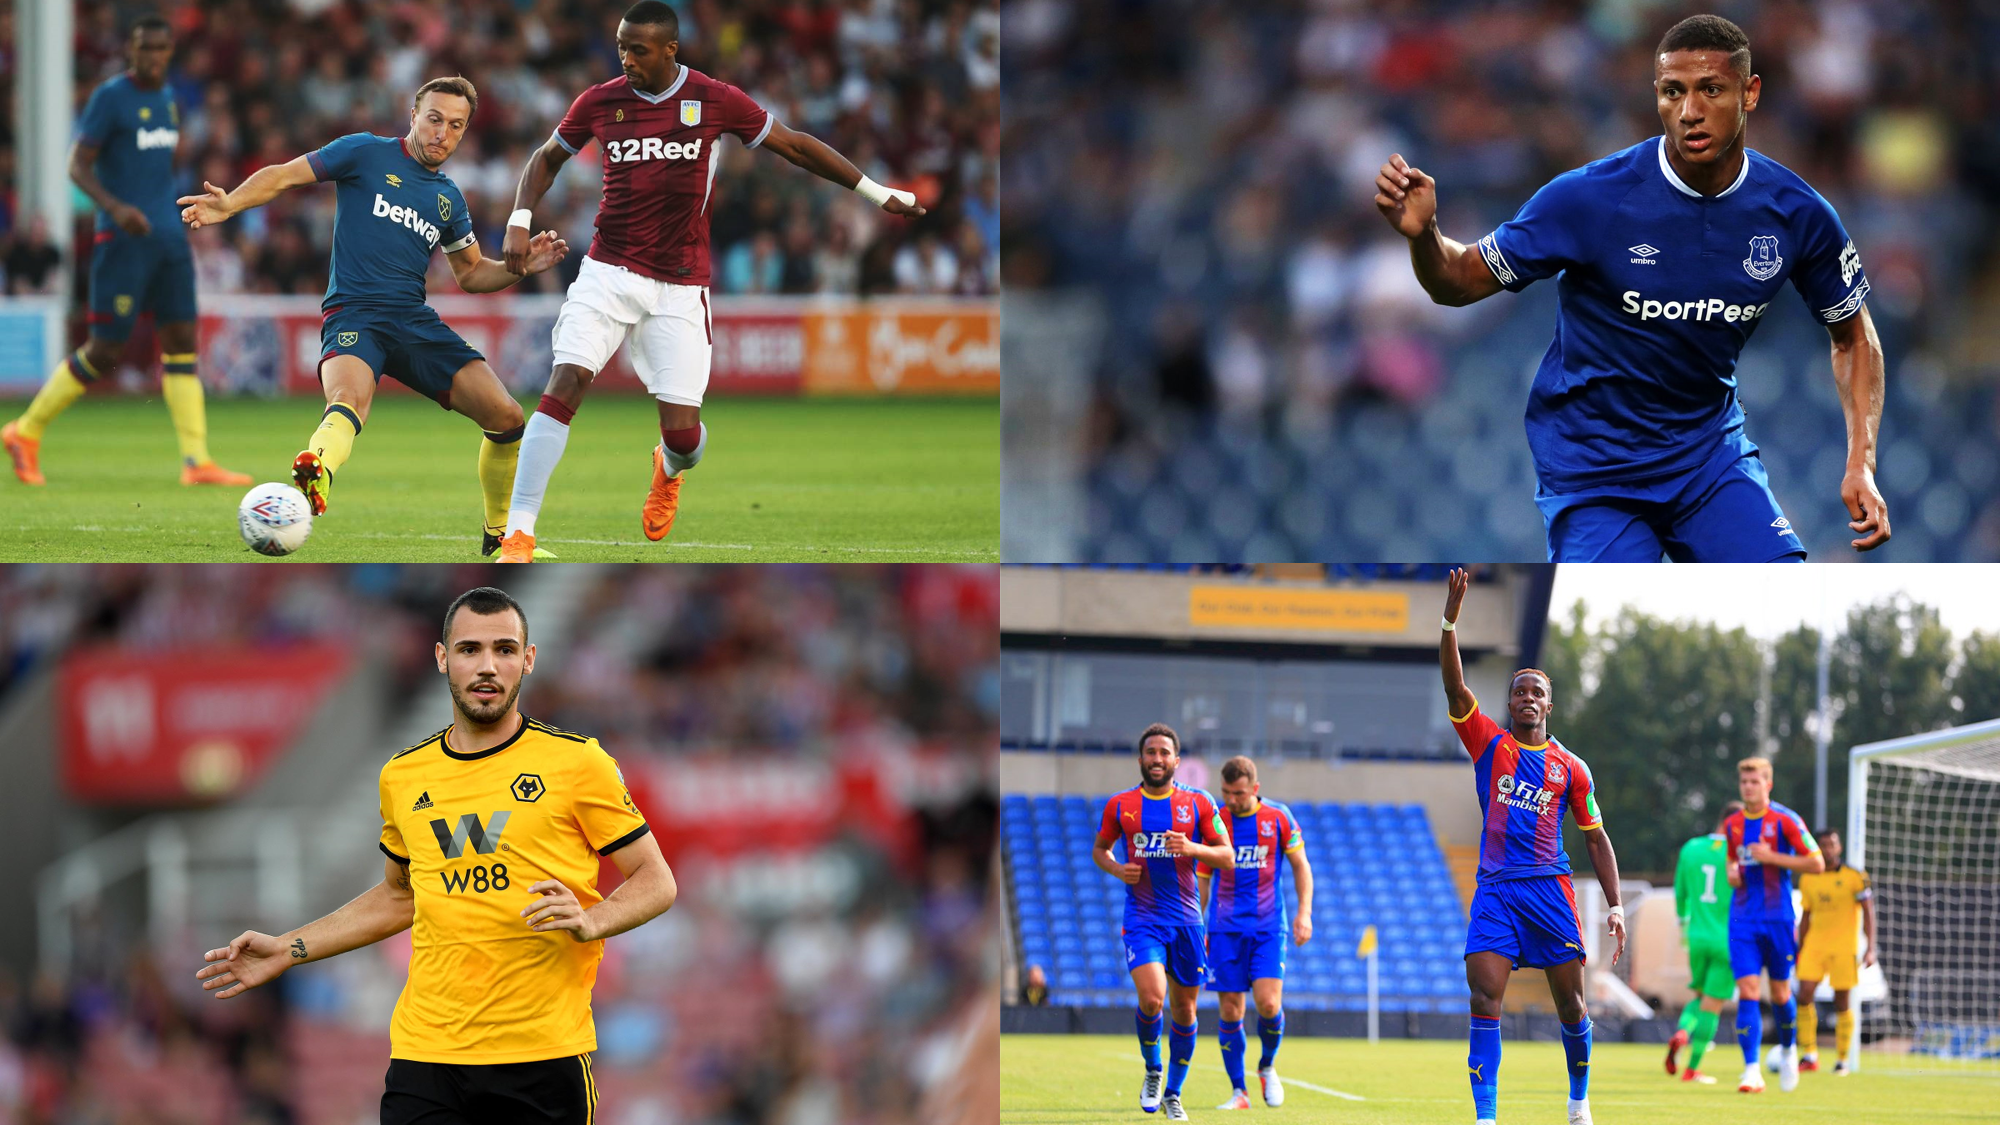 Gambling Sponsors on Premier League Kits (2018-19)